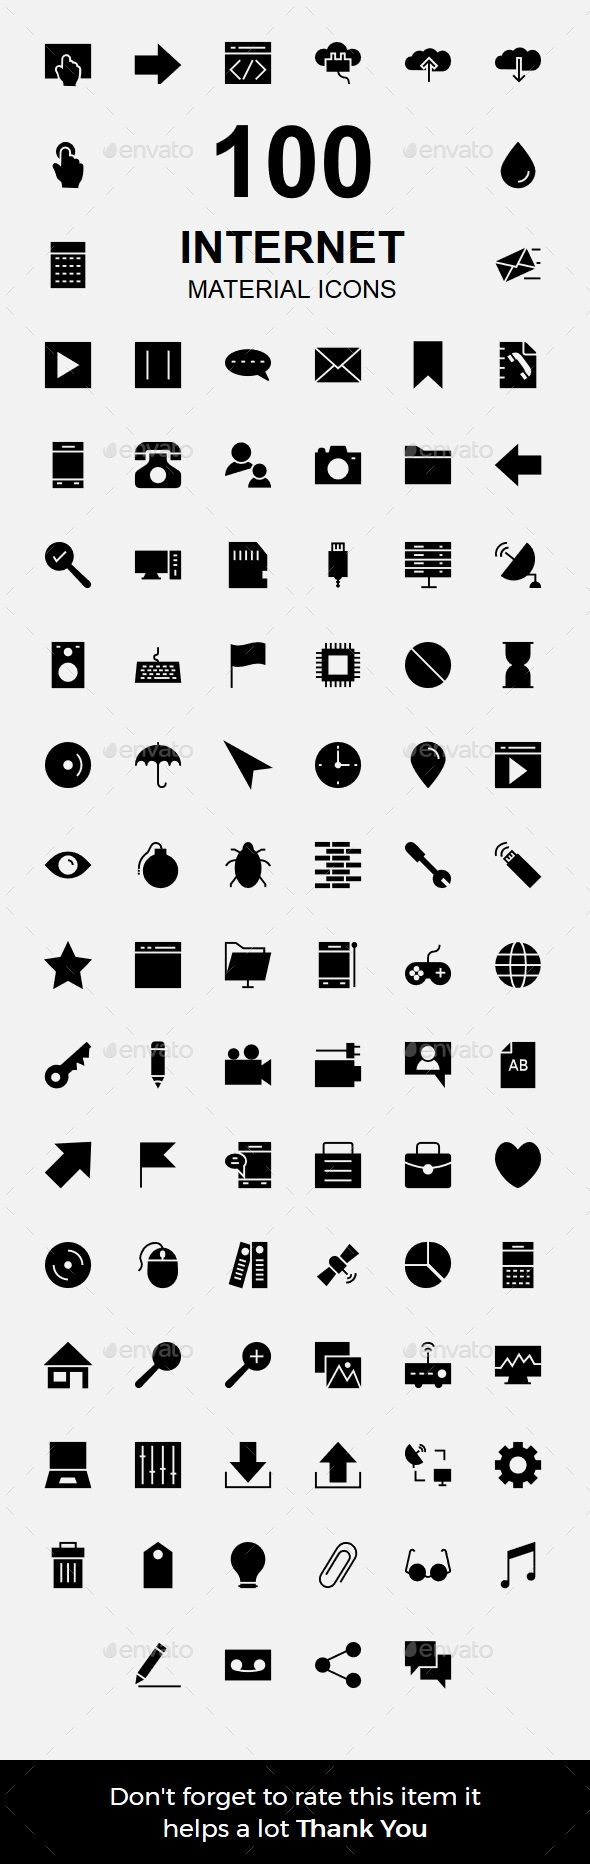 Internet Material Icons - Technology Icons